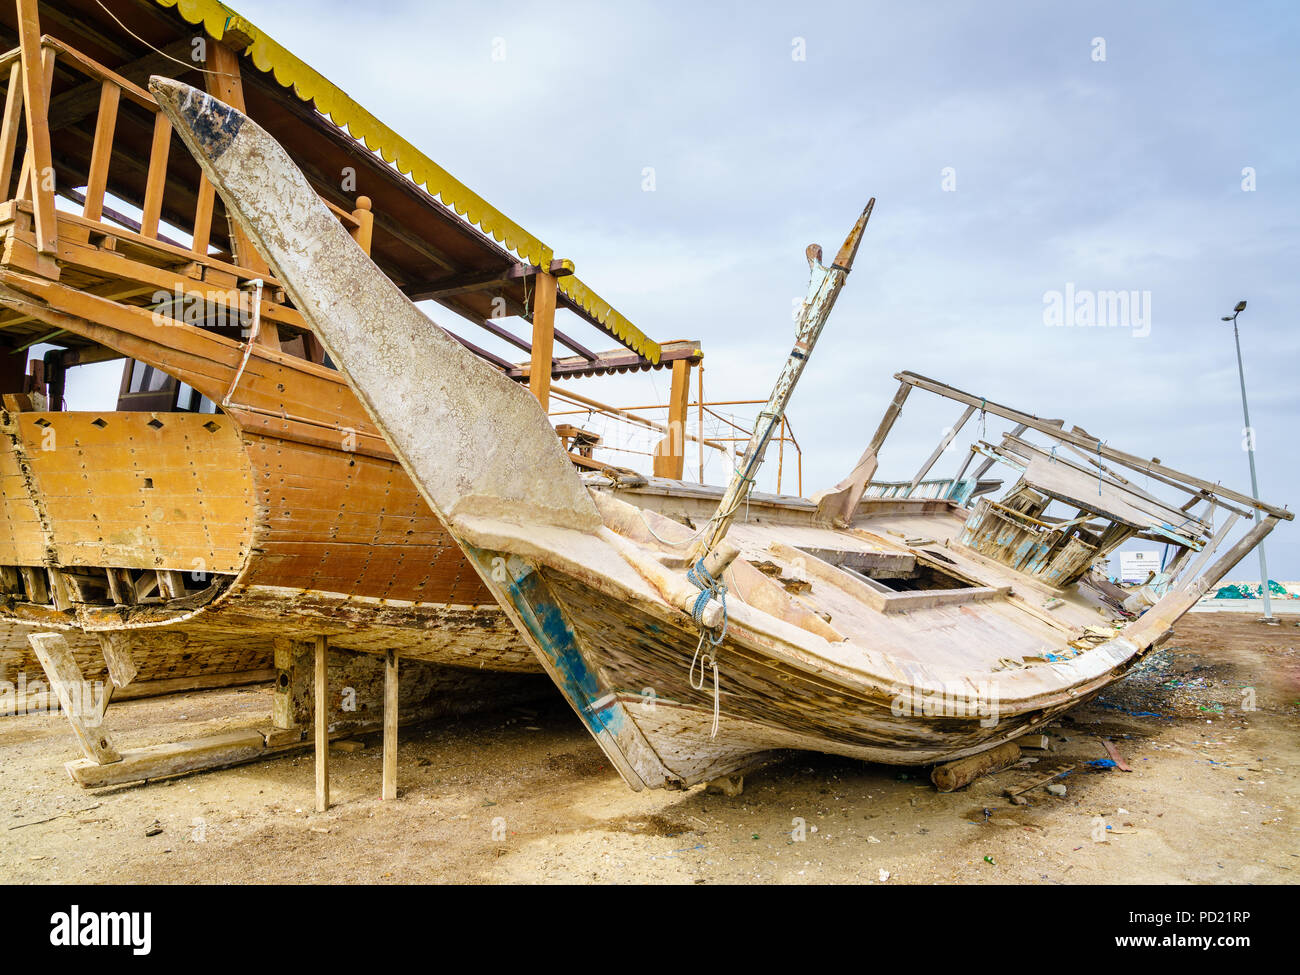 Old destroyed boats on shore near Dibba Port, UAEfishing Stock Photo